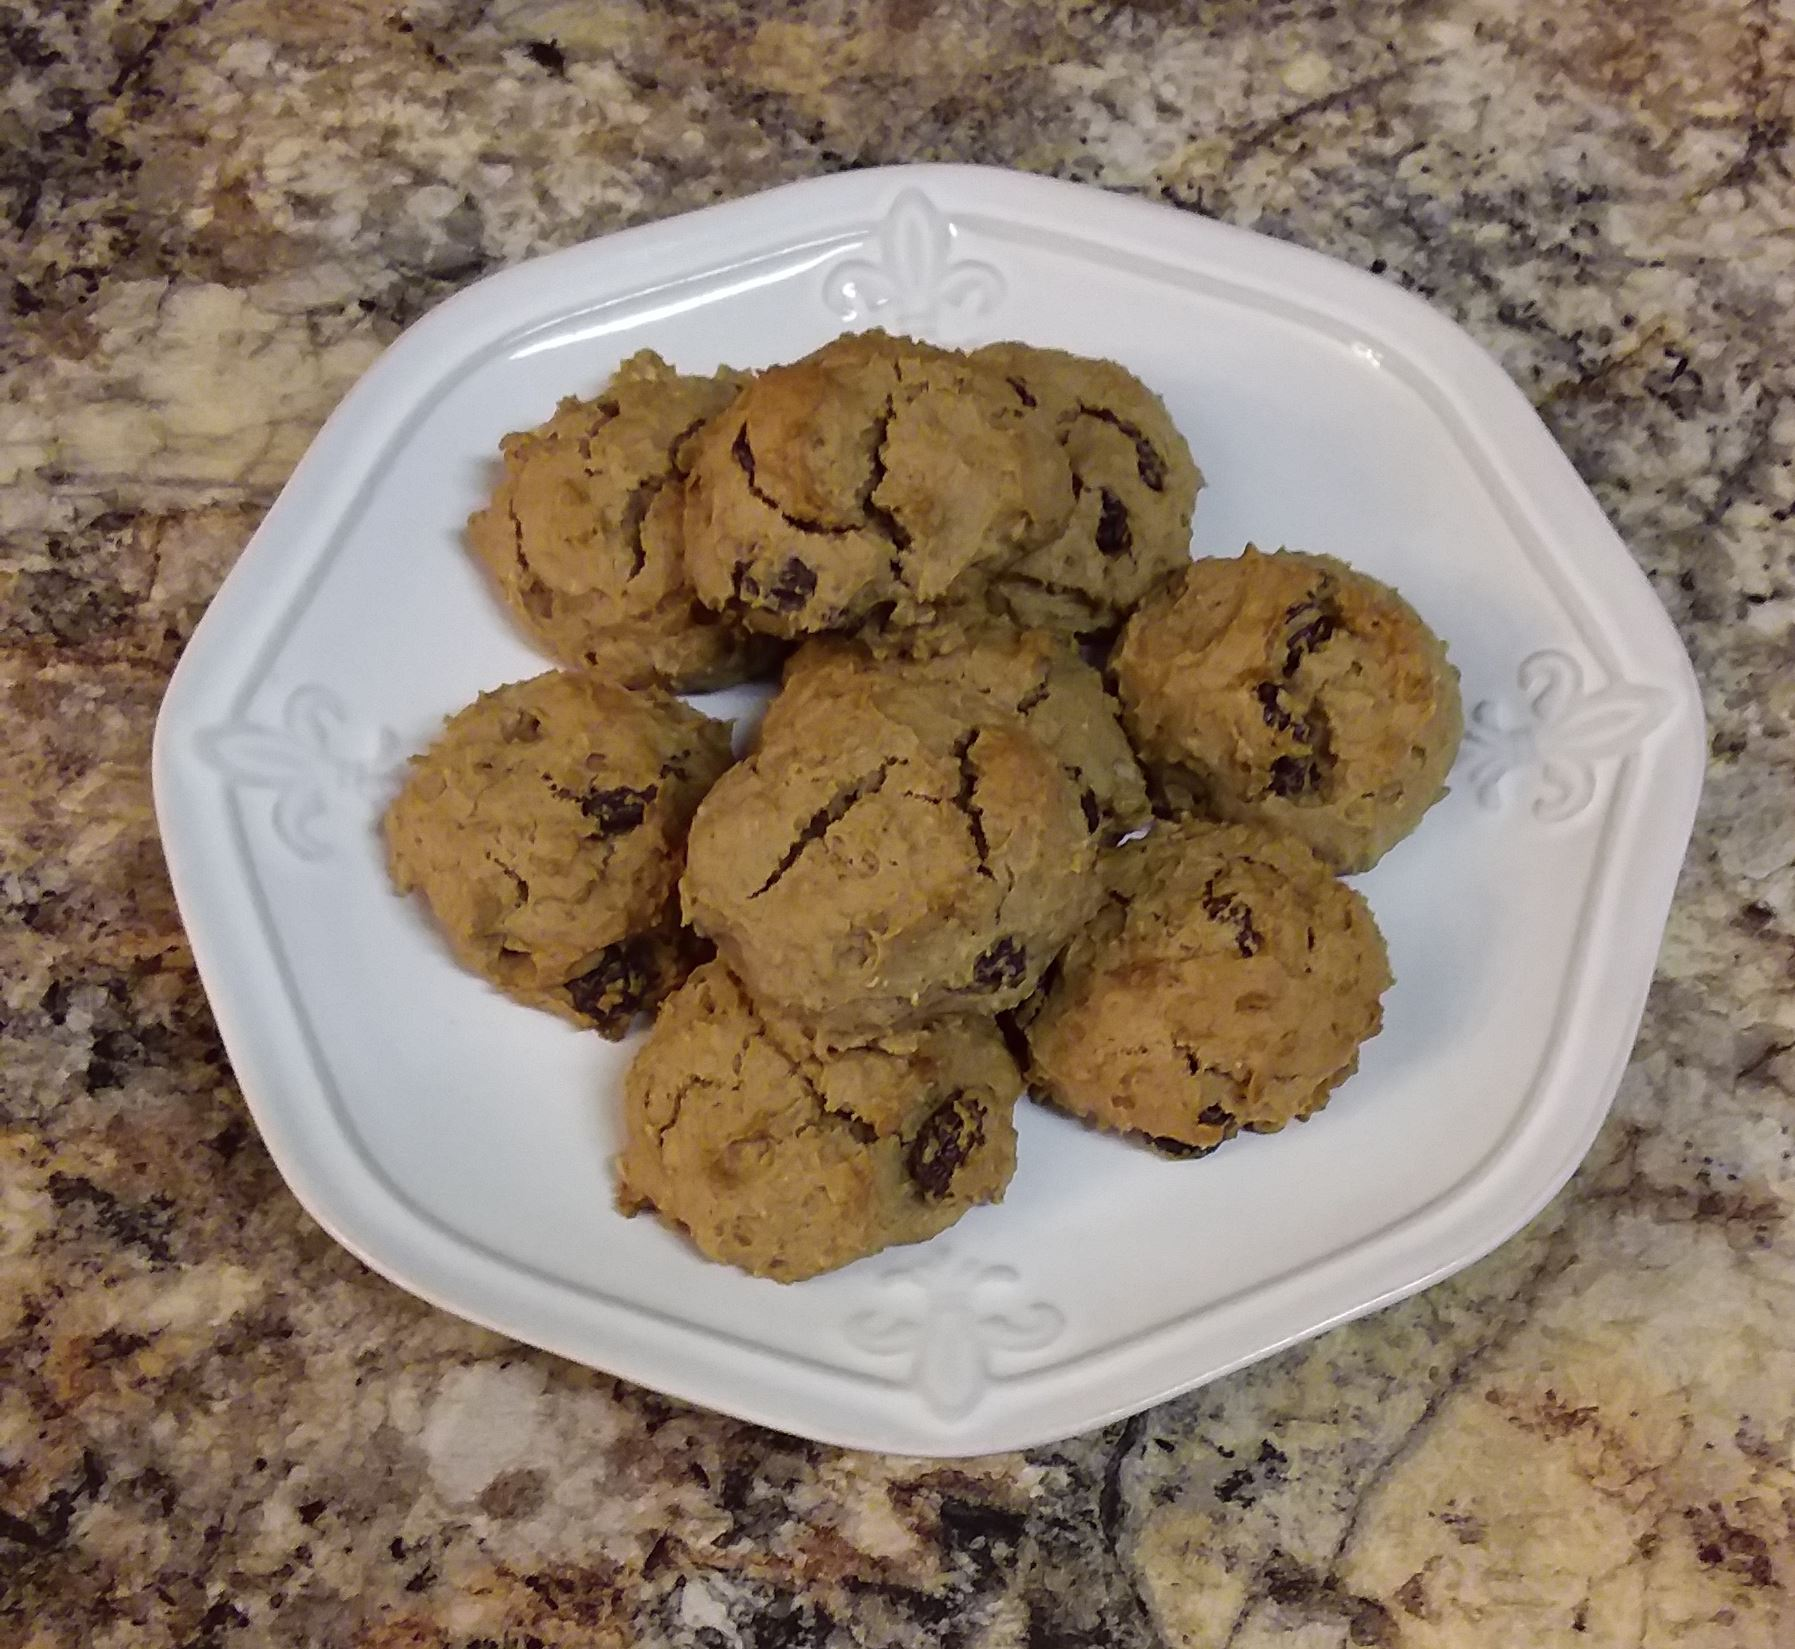 Persimmon Oatmeal Cookies - Braeden Larpenter